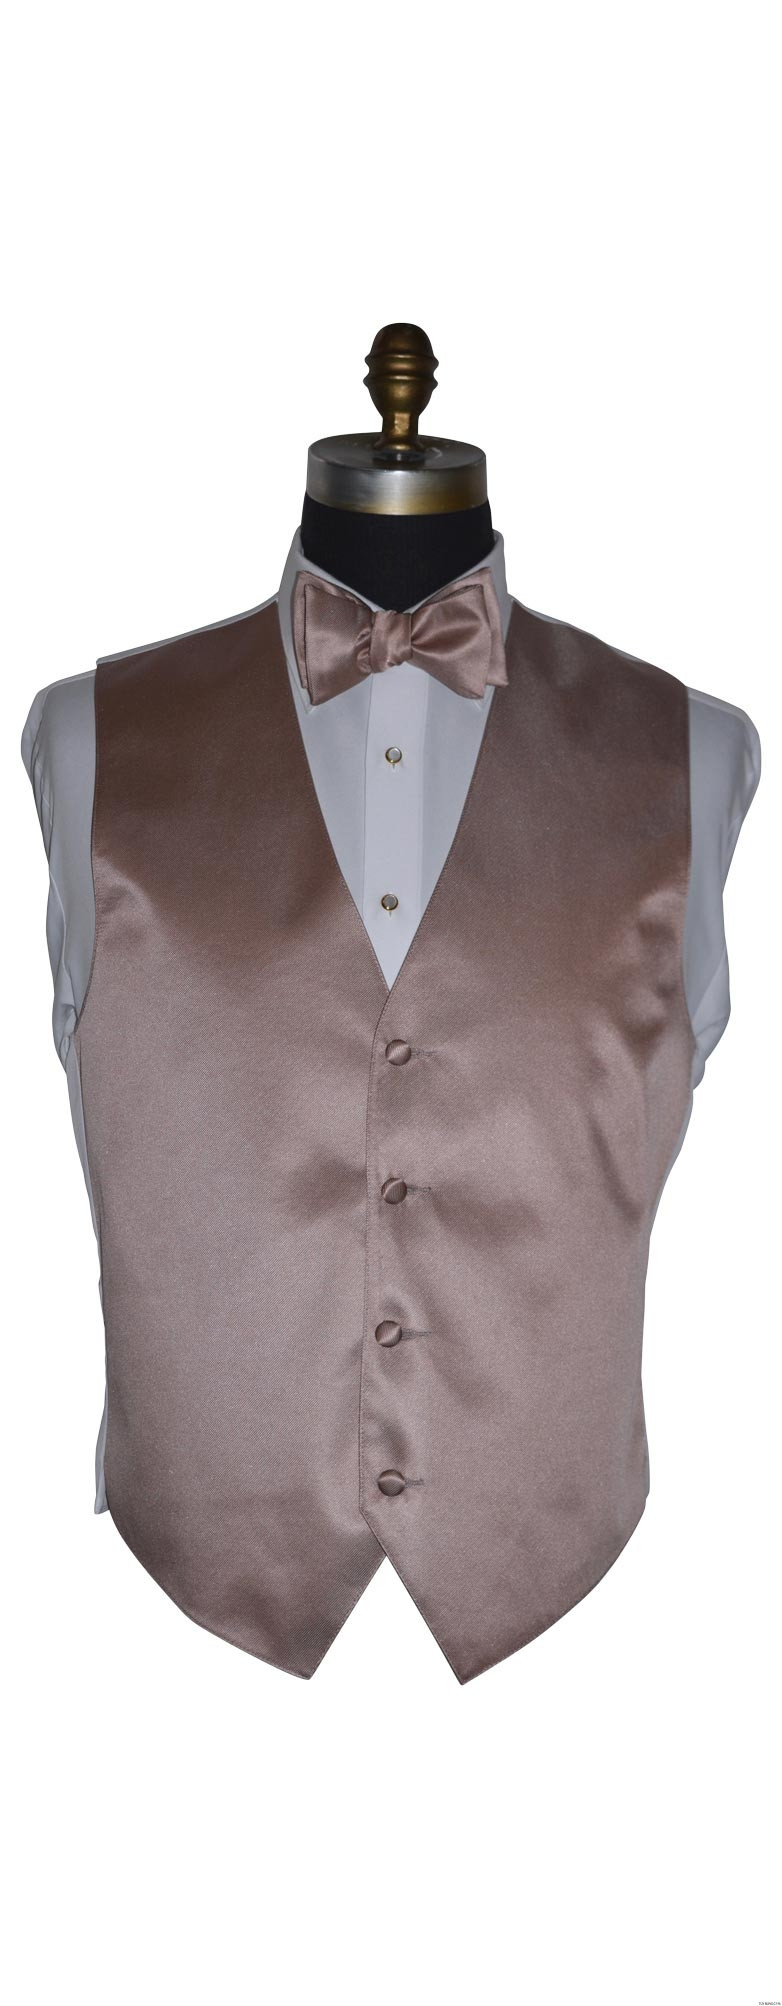 rose-gold vest and rose gold self tie bowtie bowtie for men on tuxbling.com